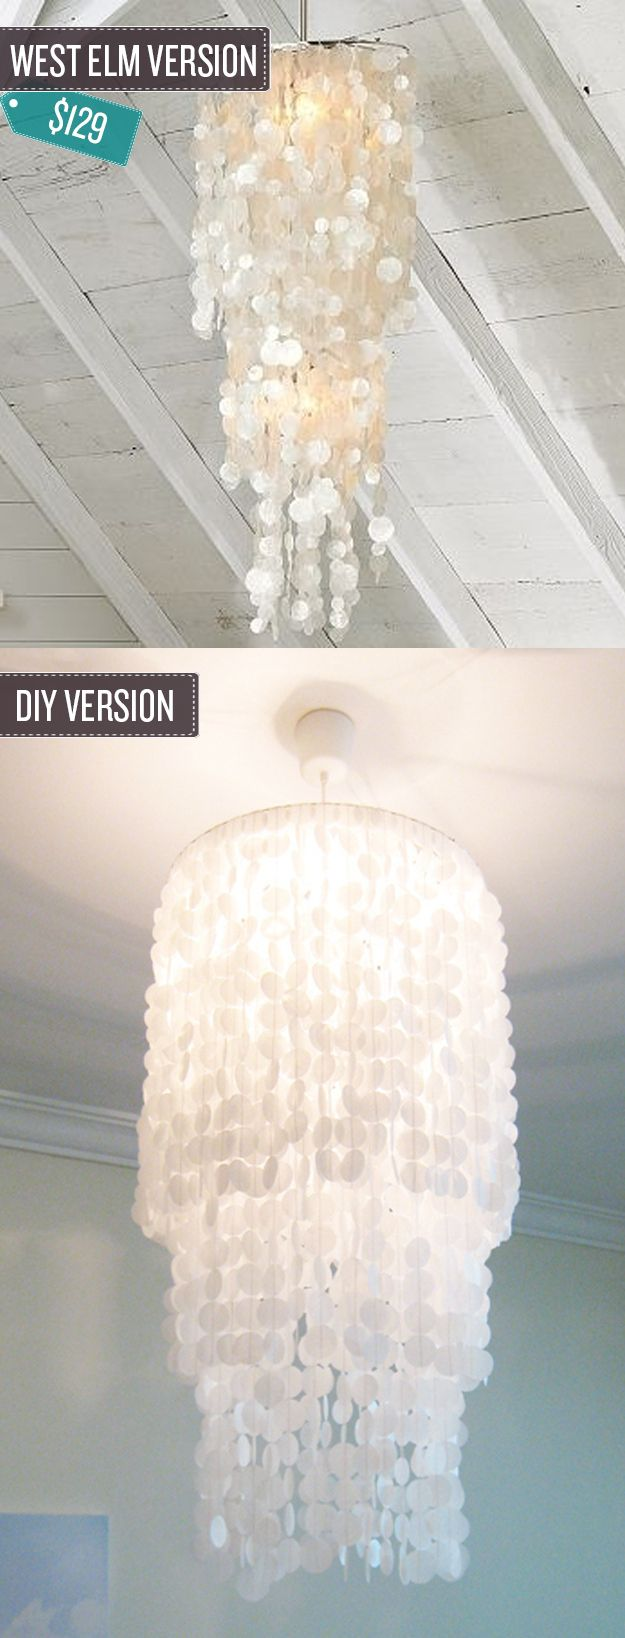 Wow! West-ellm Hacks!  Great how-to get that look.   Build a shell pendant chandelier.